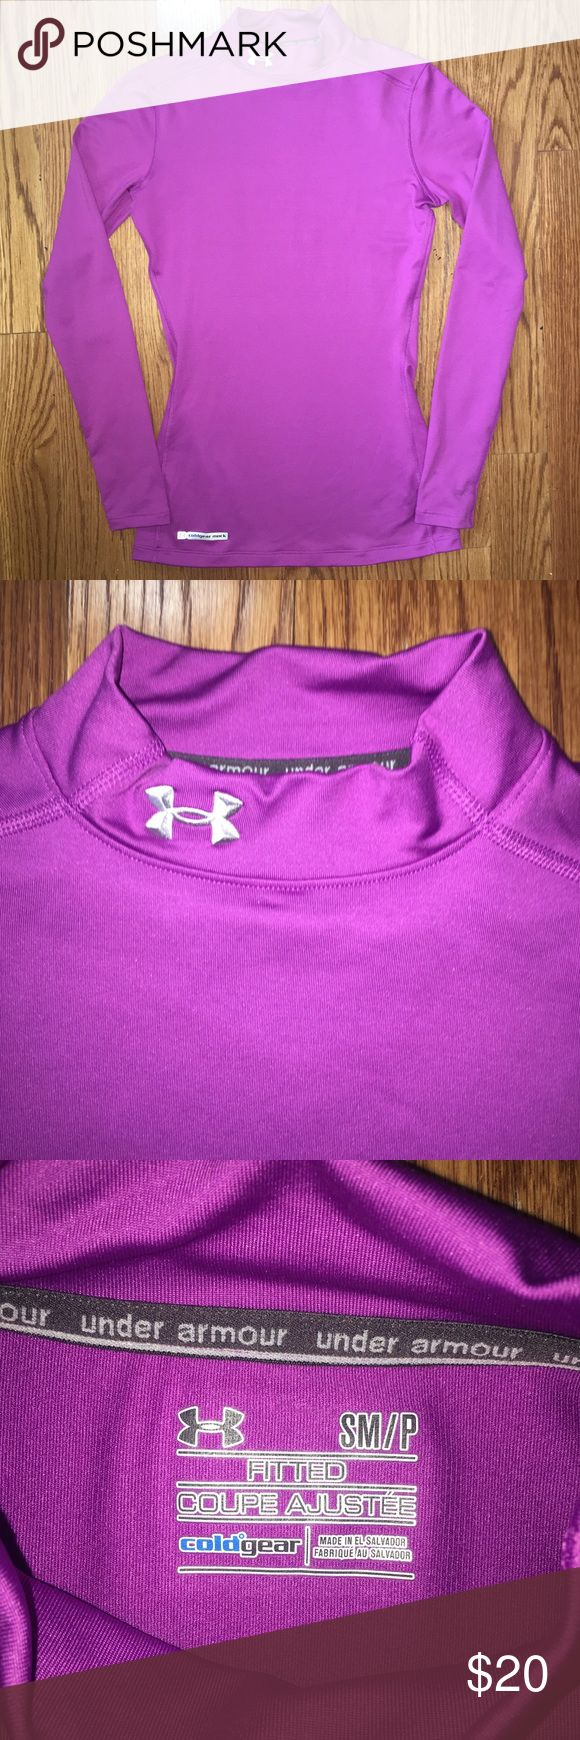 Under Armour Small Coldgear Mock Long Sleeve Top Women's Small Fitted Coldgear Mock Turtleneck long sleeve shirt in a gorgeous purple color! Good used condition - some light marks on the back and on one sleeve (last 2 pics) Nice thick material is great for the coming colder months! Under Armour Tops Tees - Long Sleeve